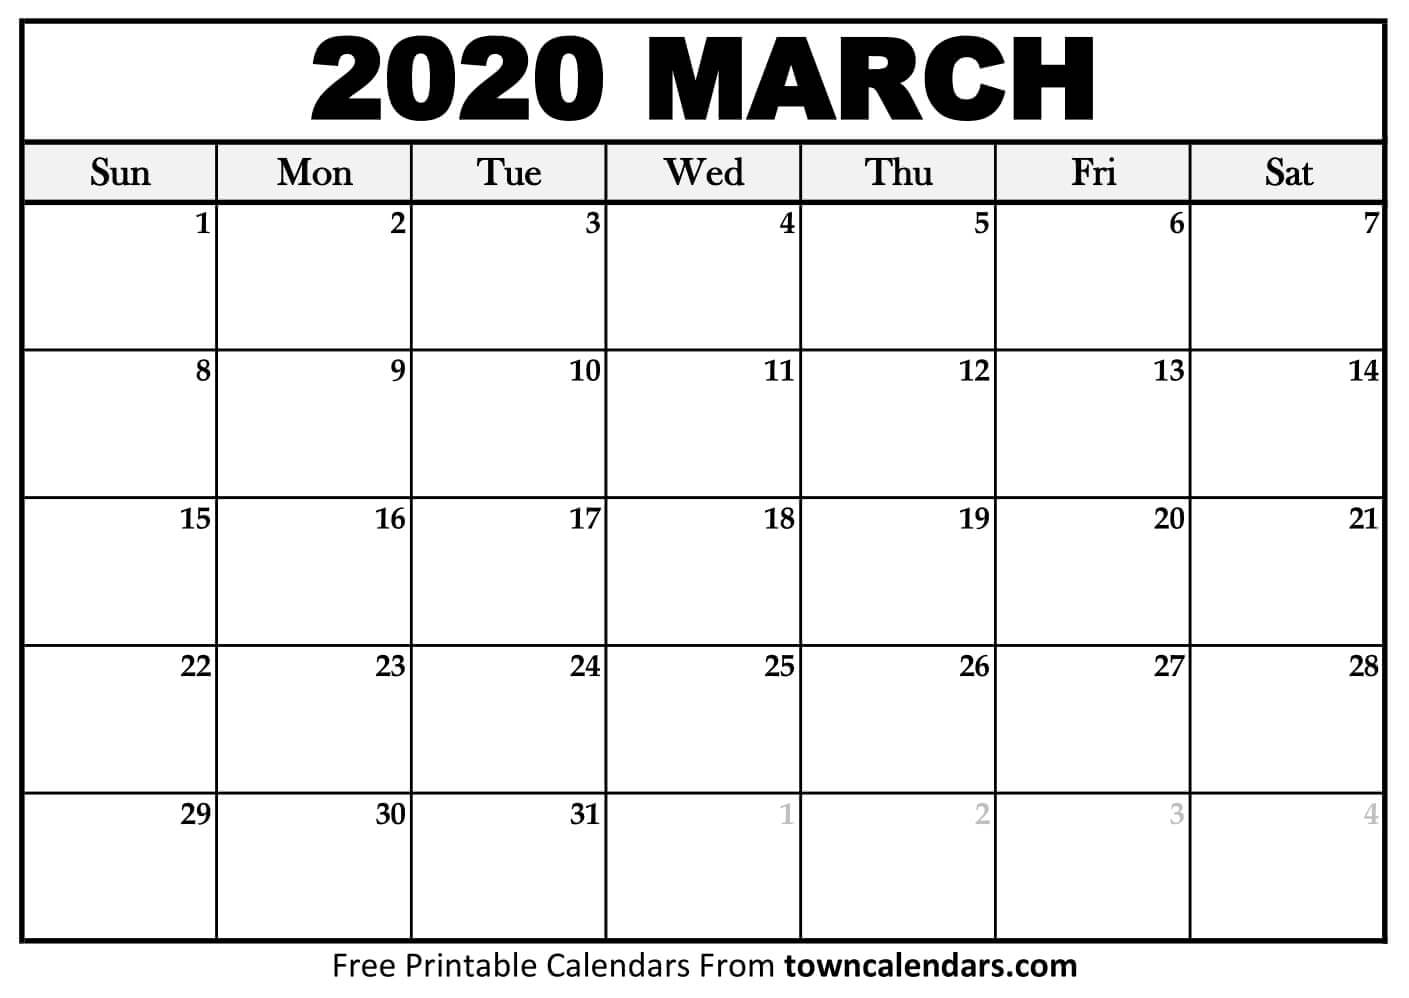 Printable March 2020 Calendar - Towncalendars